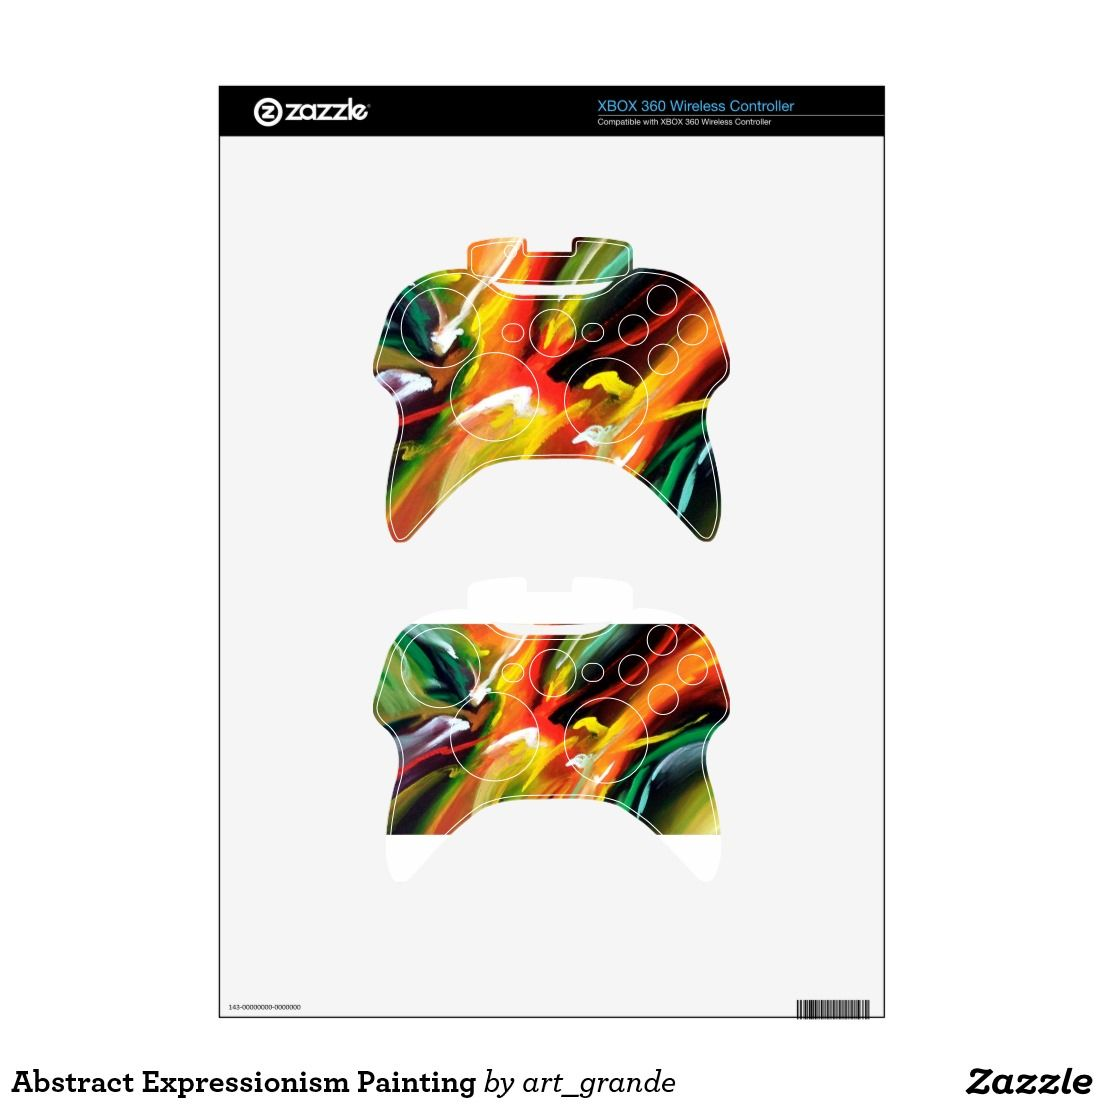 Xbox 360 wireless controller skin xbox 360 controller skins zazzle - Abstract Expressionism Painting Xbox 360 Controller Skin